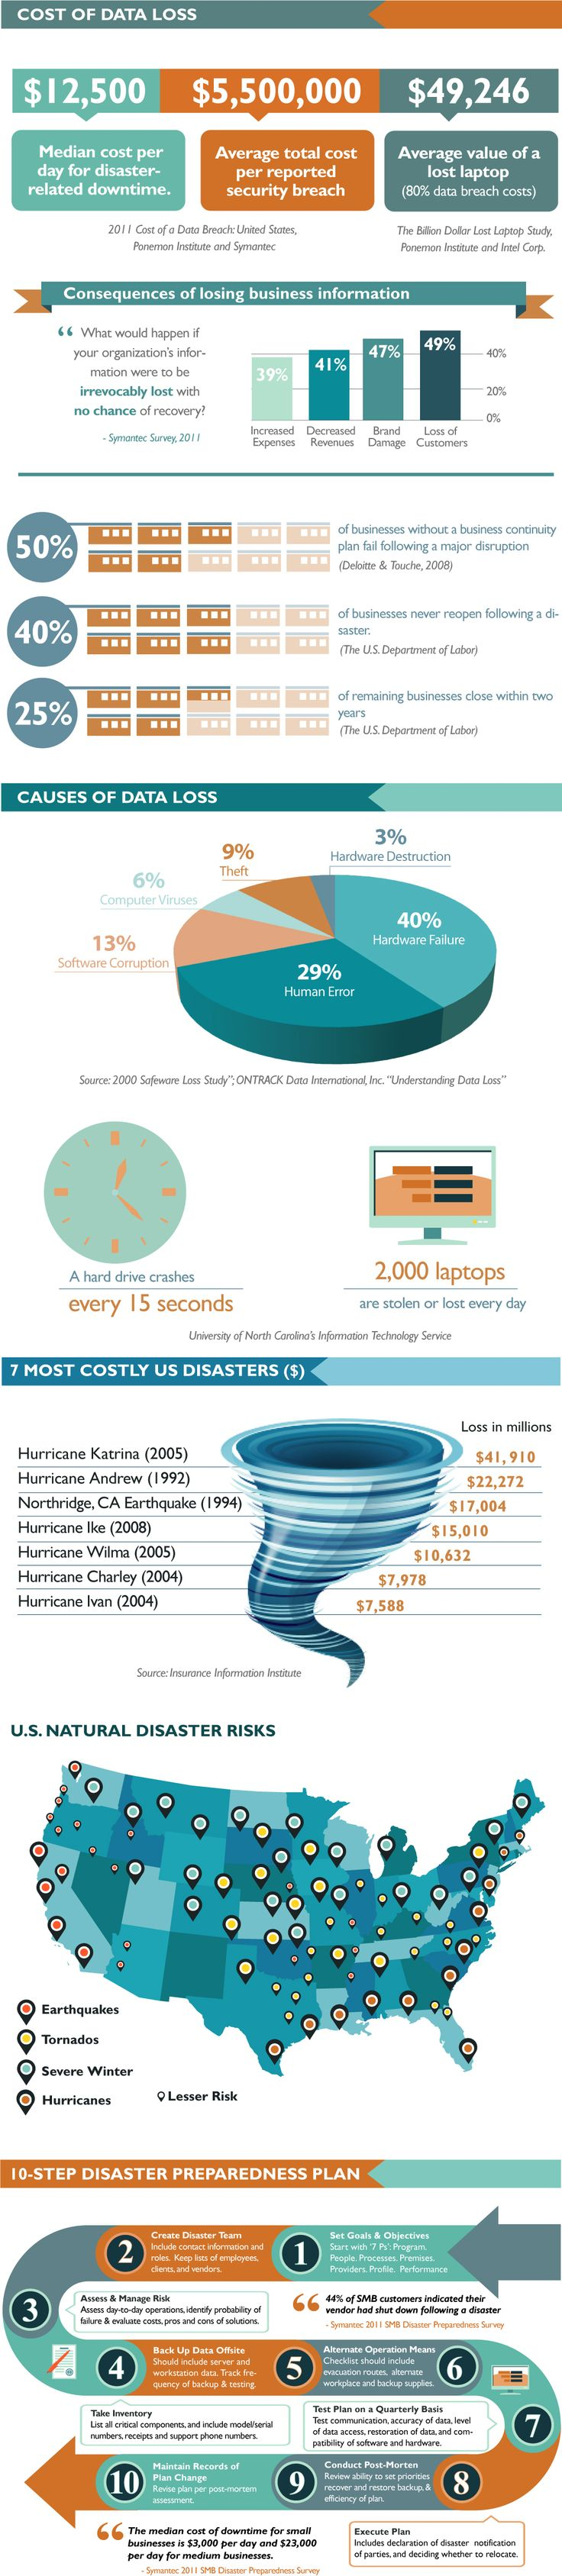 Small Business Disaster Preparedness